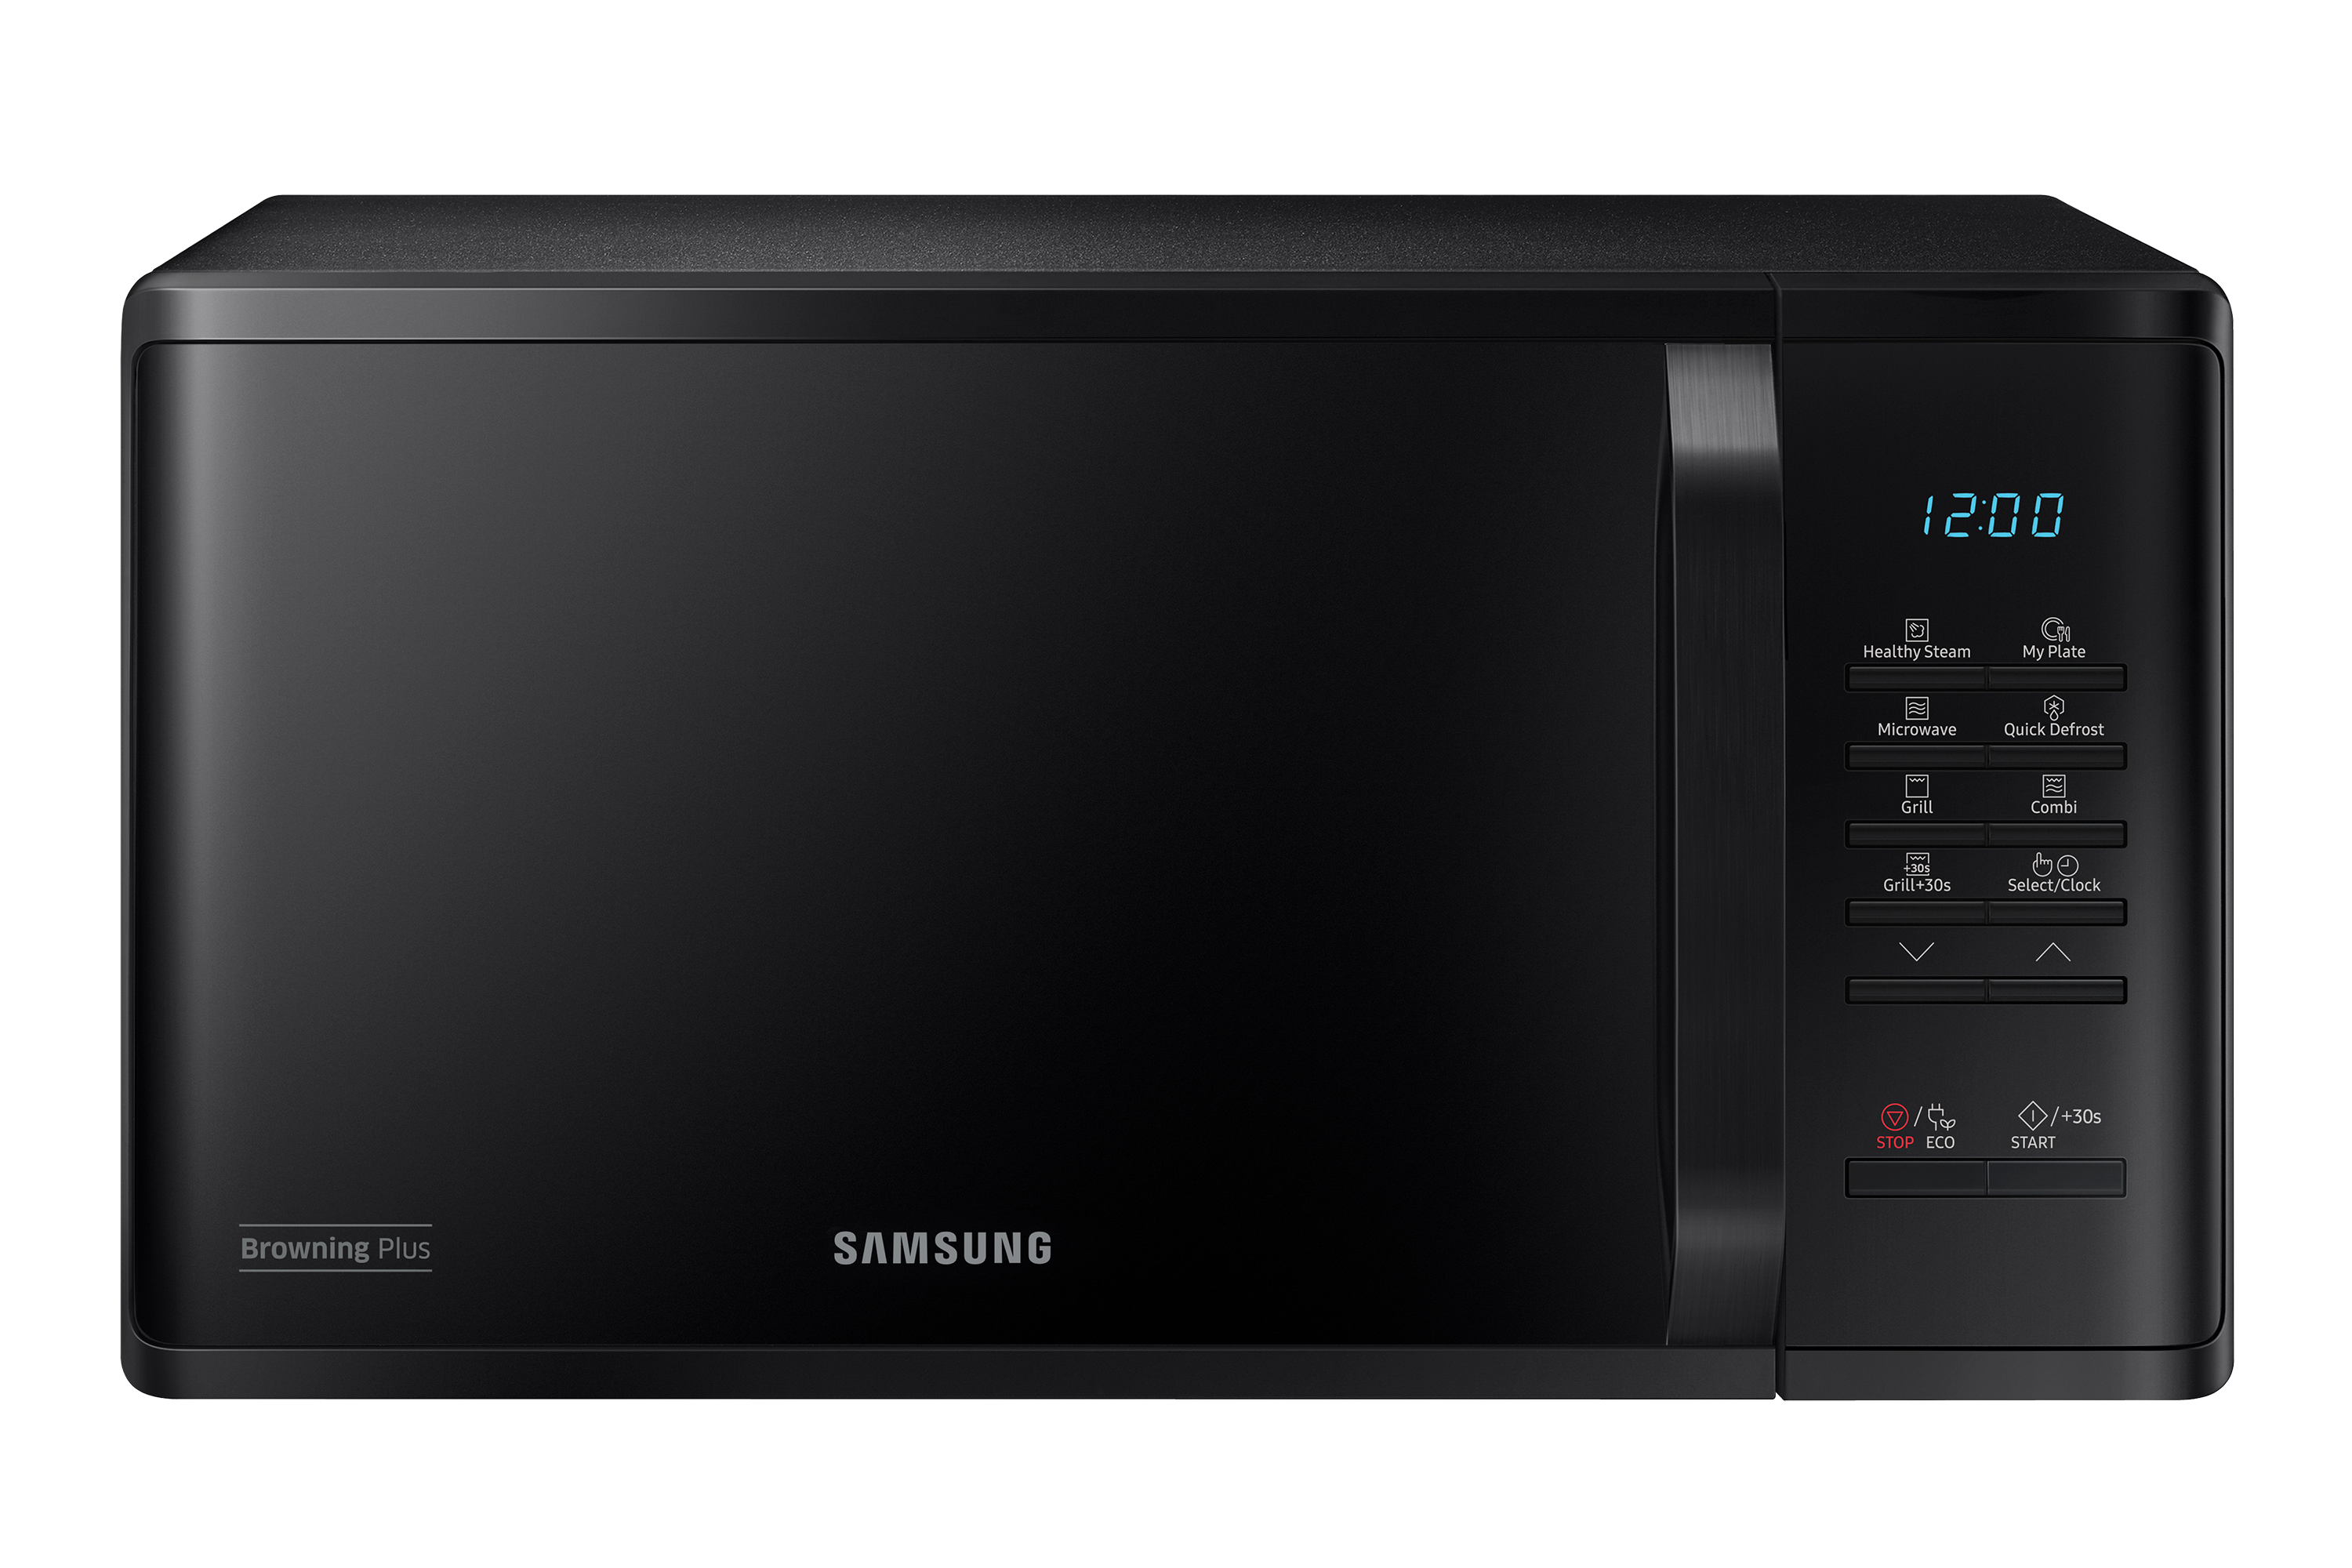 Grill Microwave Oven with Healthy Steam, 23L (MG23K3513GK)